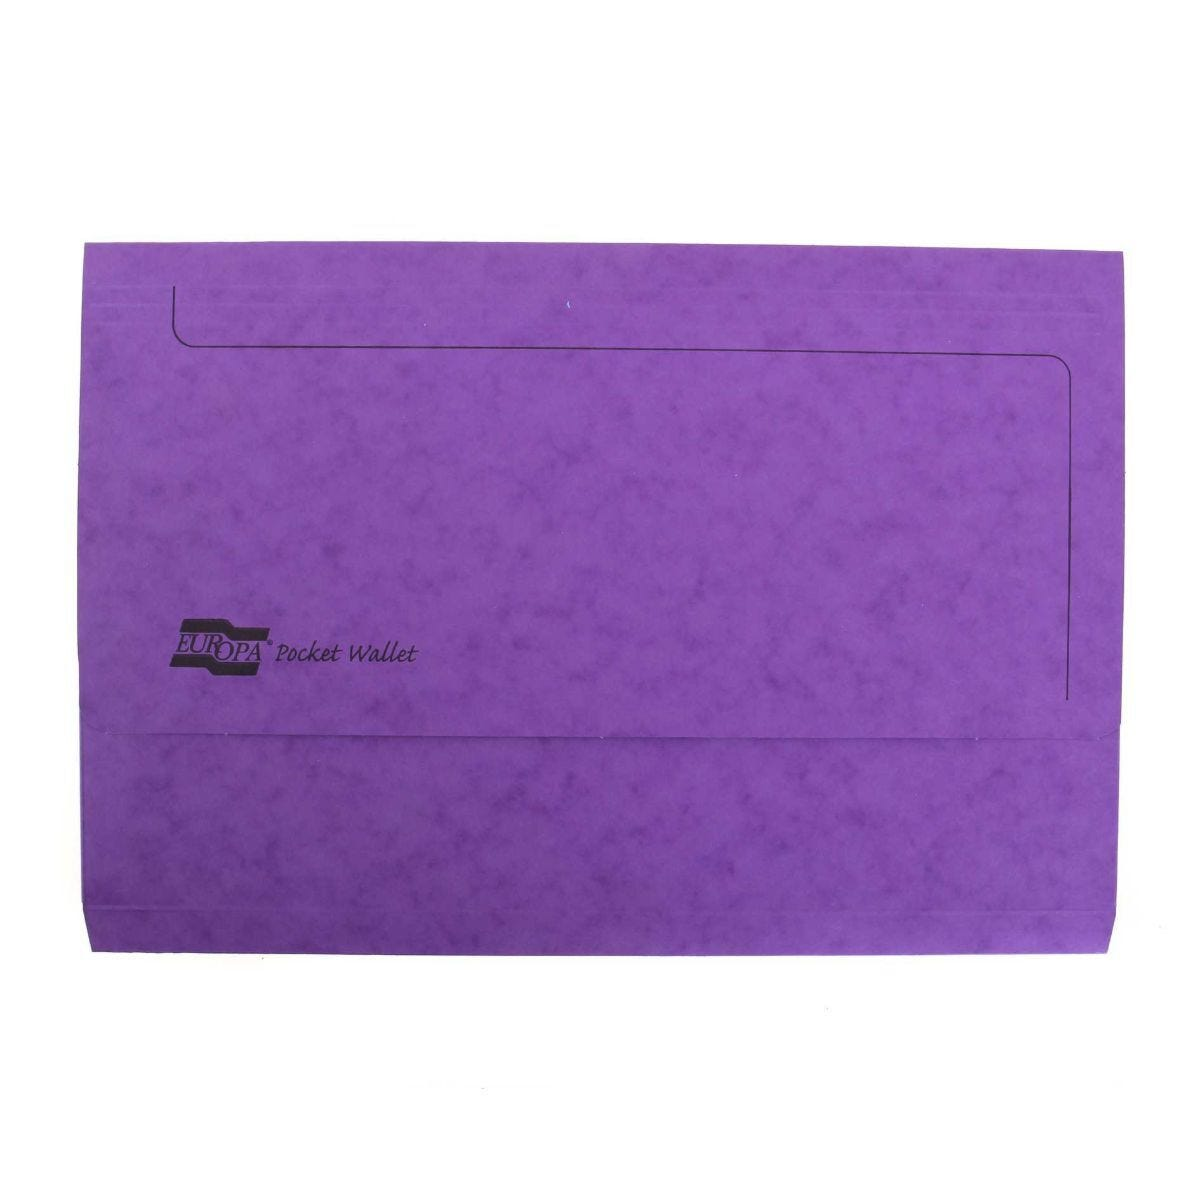 Europa Pocket Wallets Foolscap Pack of 25 Lilac